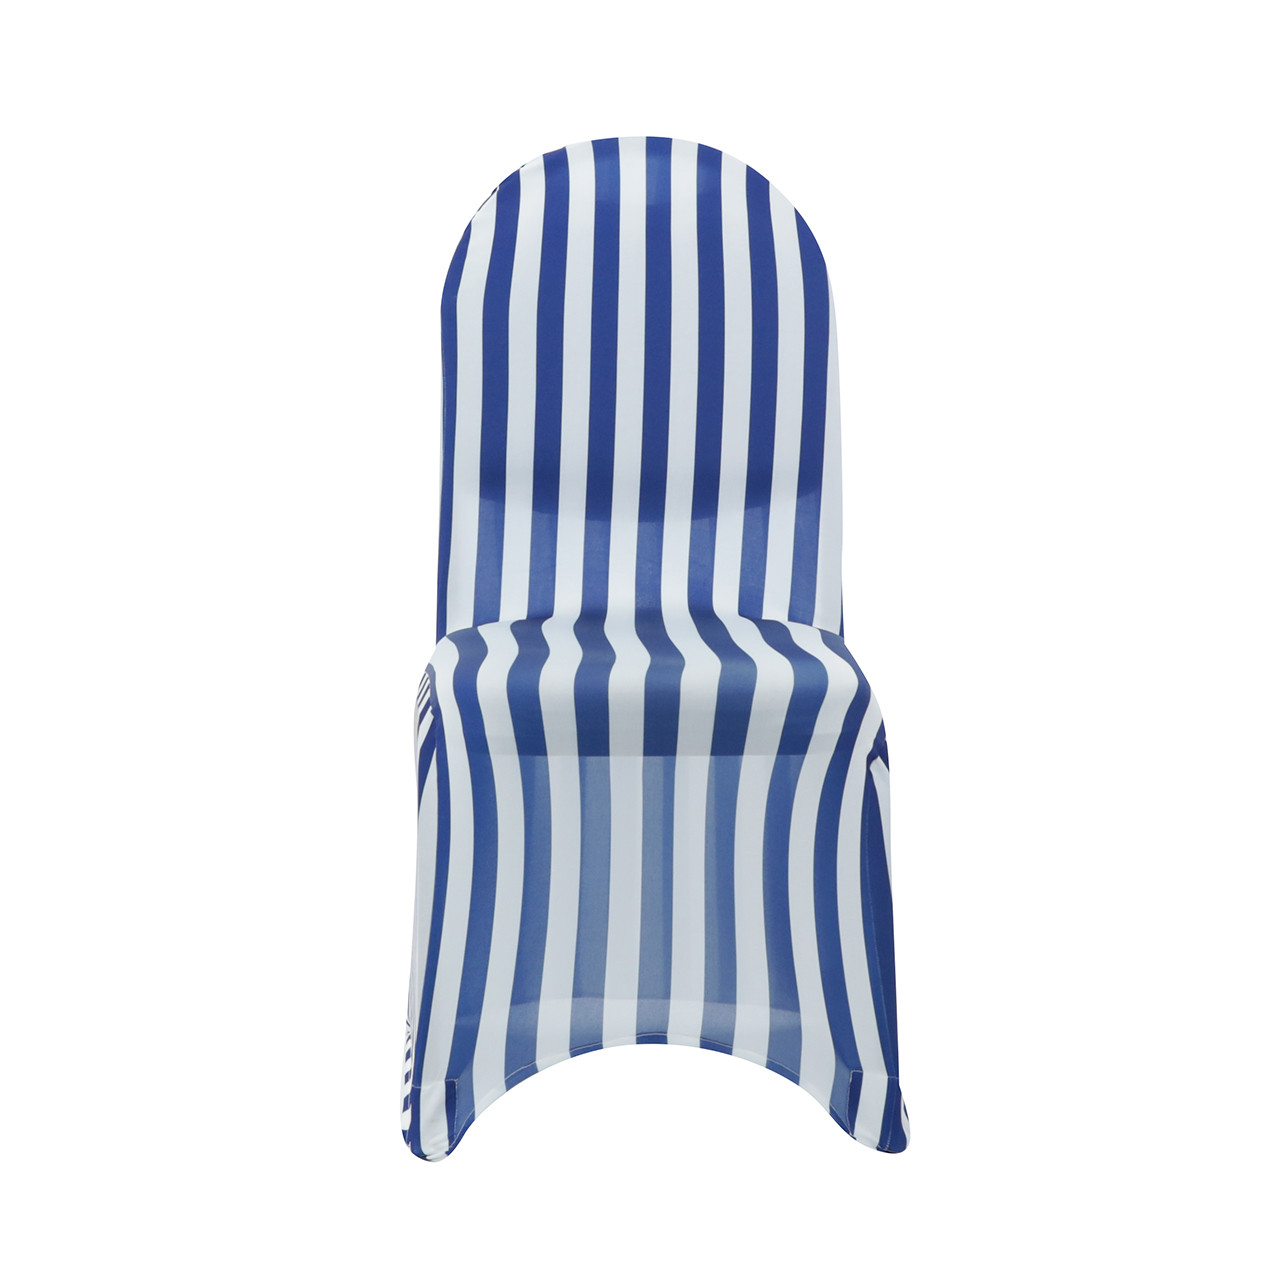 pale blue chair covers wicker folding chairs stretch spandex banquet cover striped white and